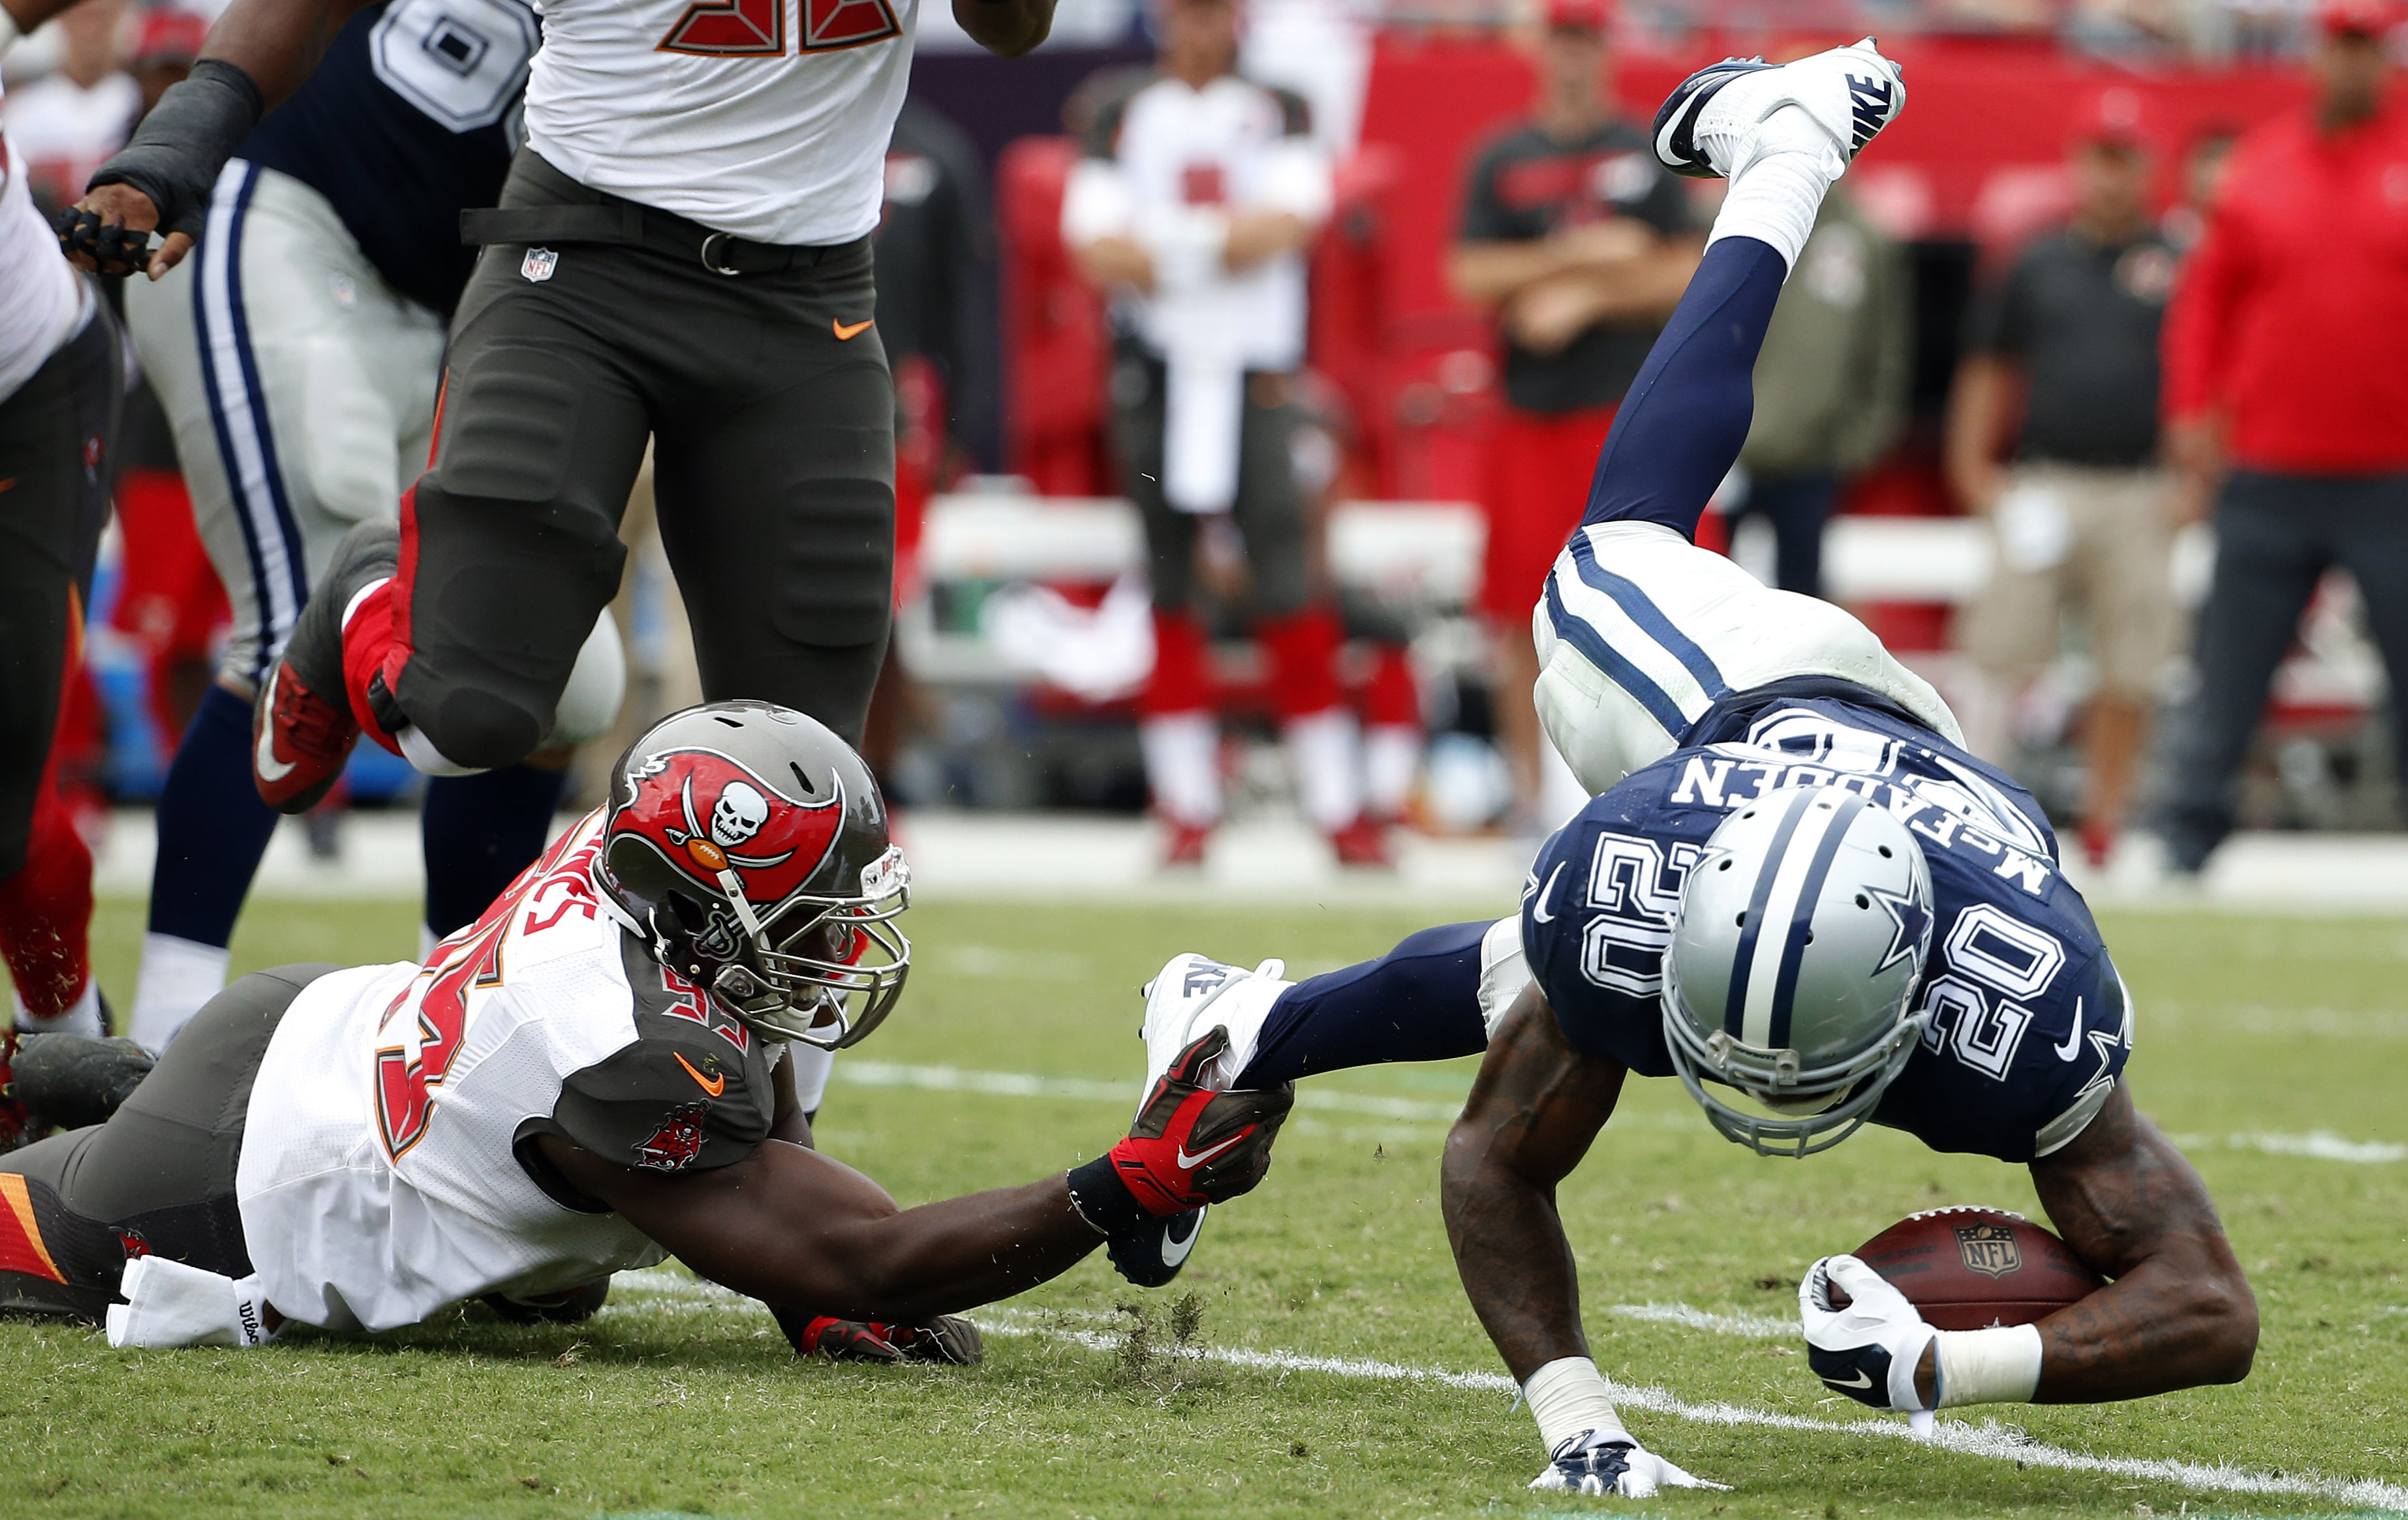 Dallas Cowboys running back Darren McFadden (20) gets tripped up by Tampa Bay Buccaneers defensive end Howard Jones (95) during the second quarter of an NFL football game Sunday, Nov. 15, 2015, in Tampa, Fla. (AP Photo/Brian Blanco)